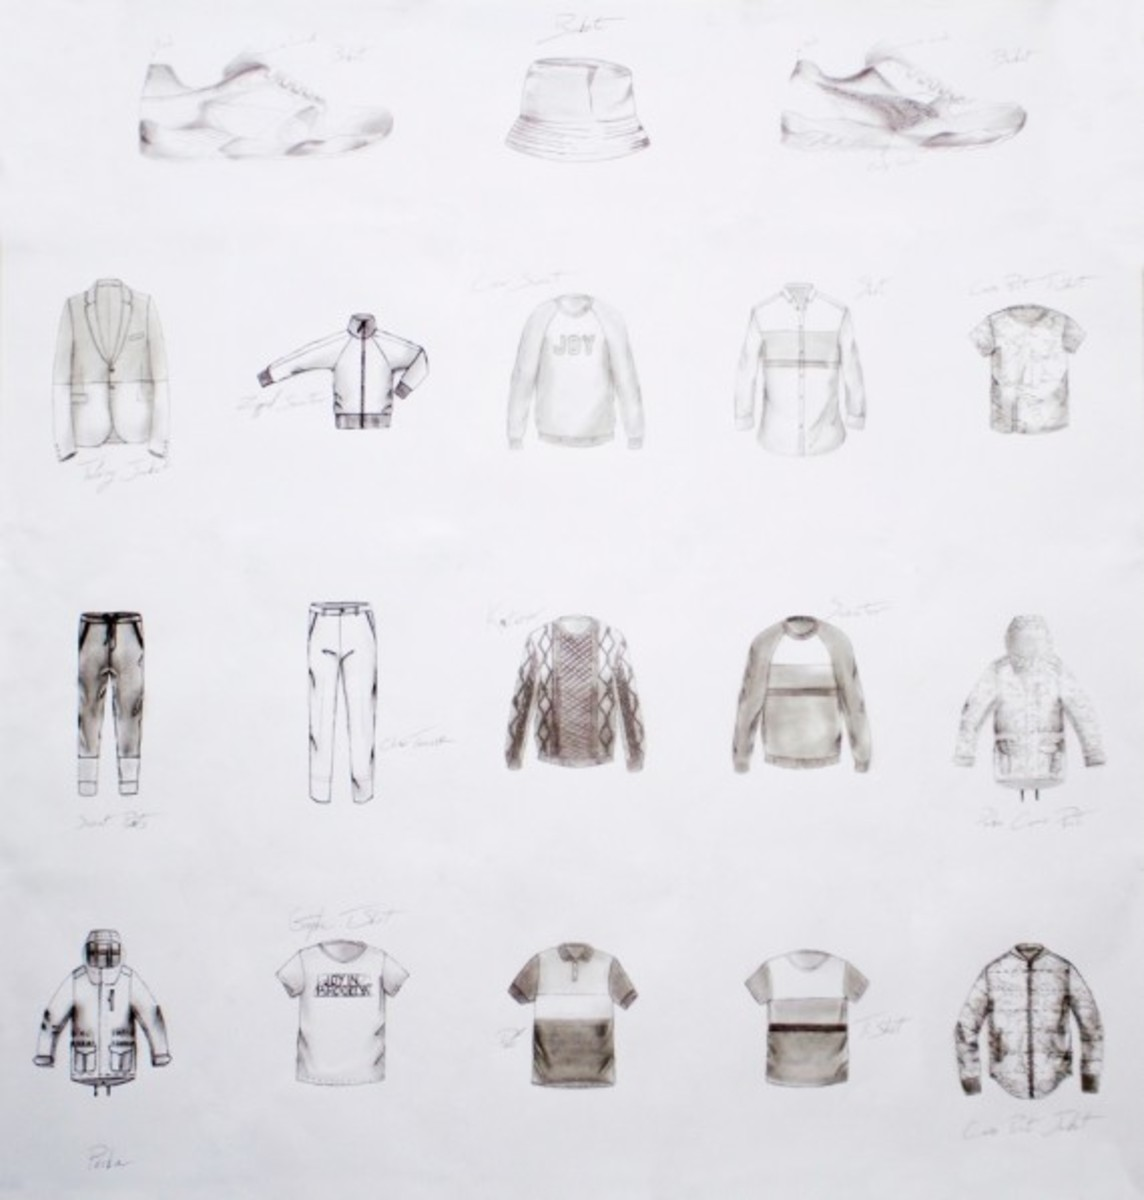 bwgh-for-puma-fall-winter-2014-collection-first-sketches-03